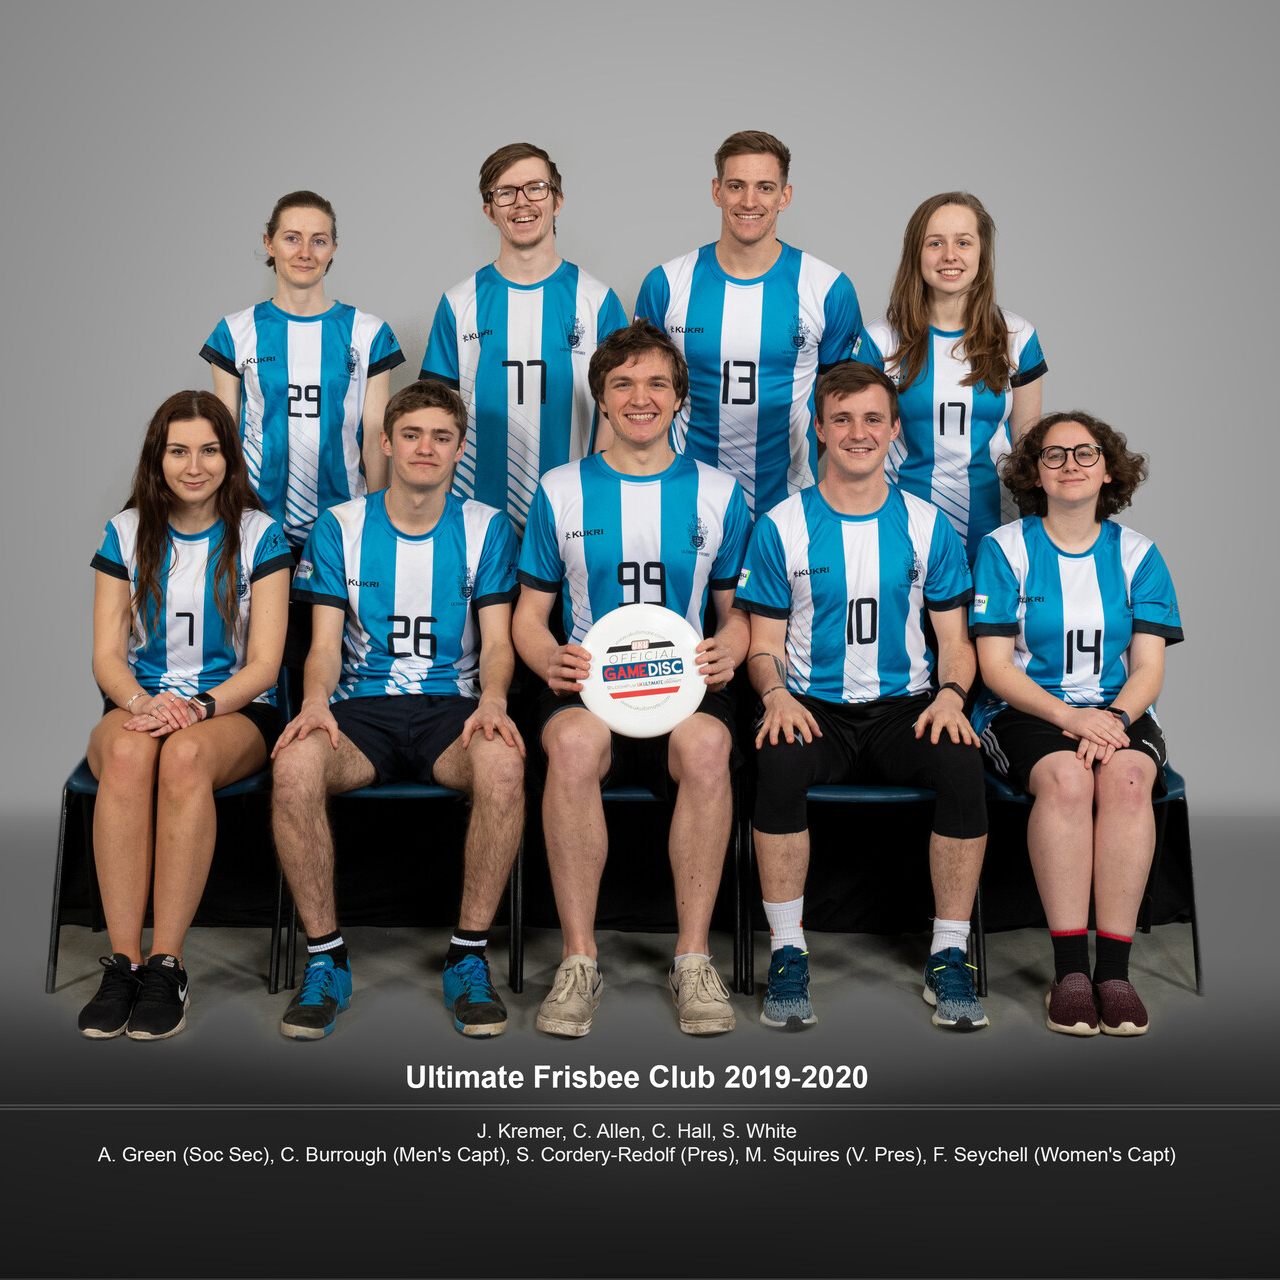 Full team photo of the Ultimate Frisbee Club